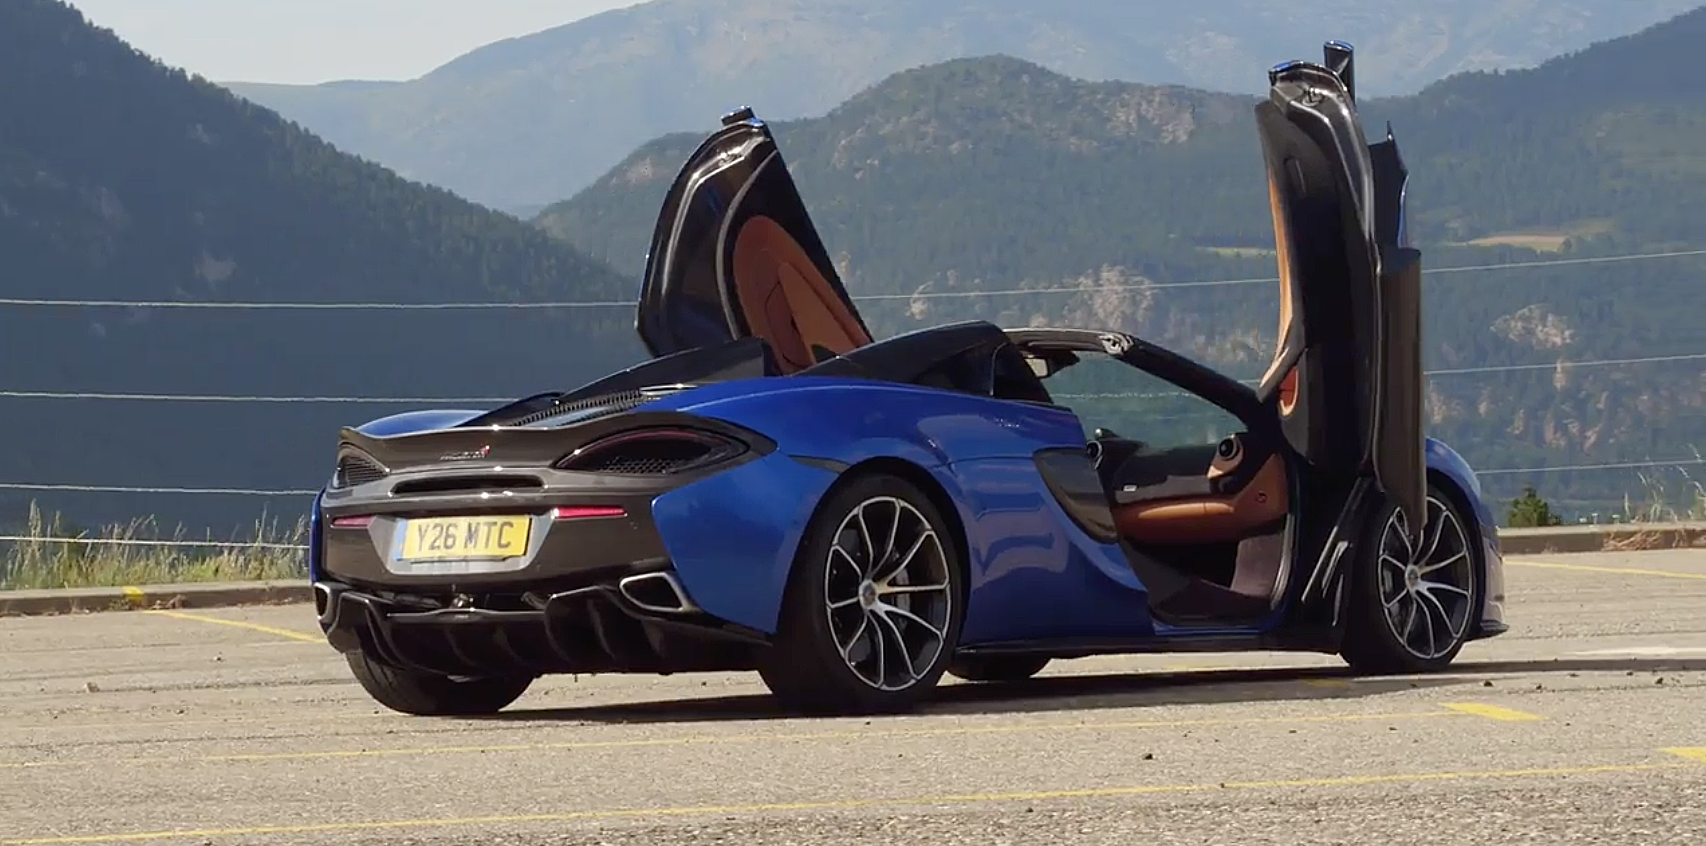 Which Is Better The Mclaren 720s Or The Mclaren 570s Spider